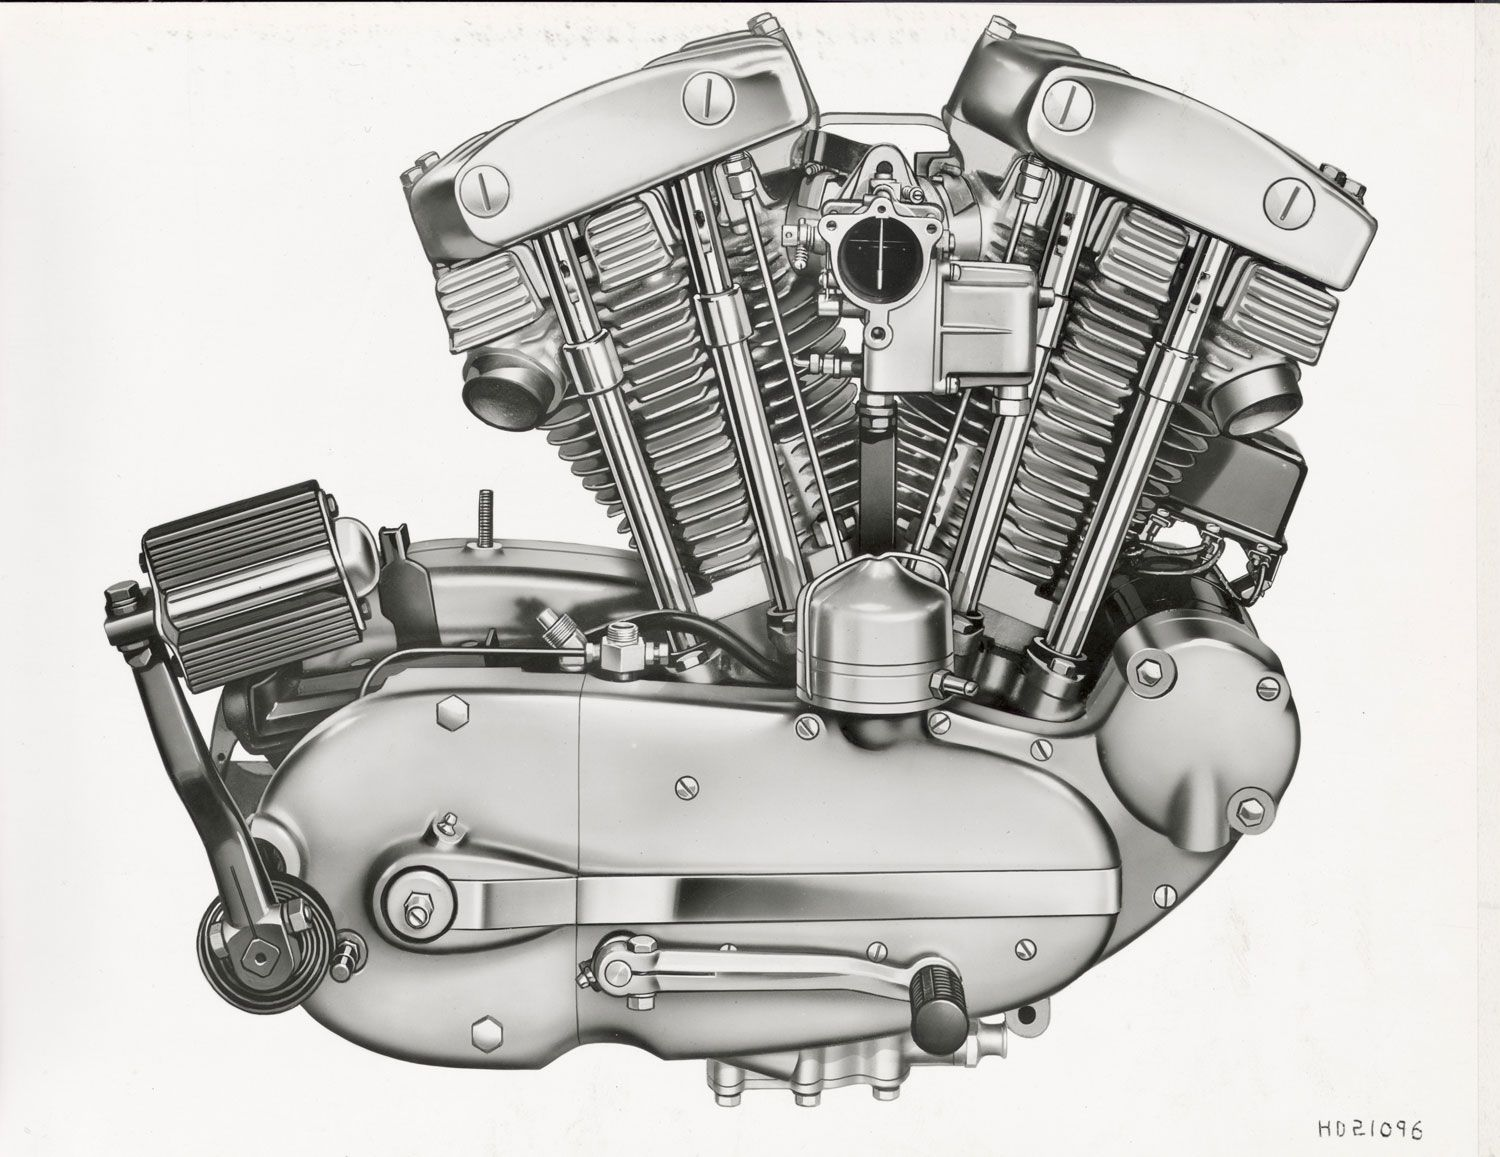 The Ironhead Sportster engine was replaced by the Evo motor in Sportsters beginning in 1986.